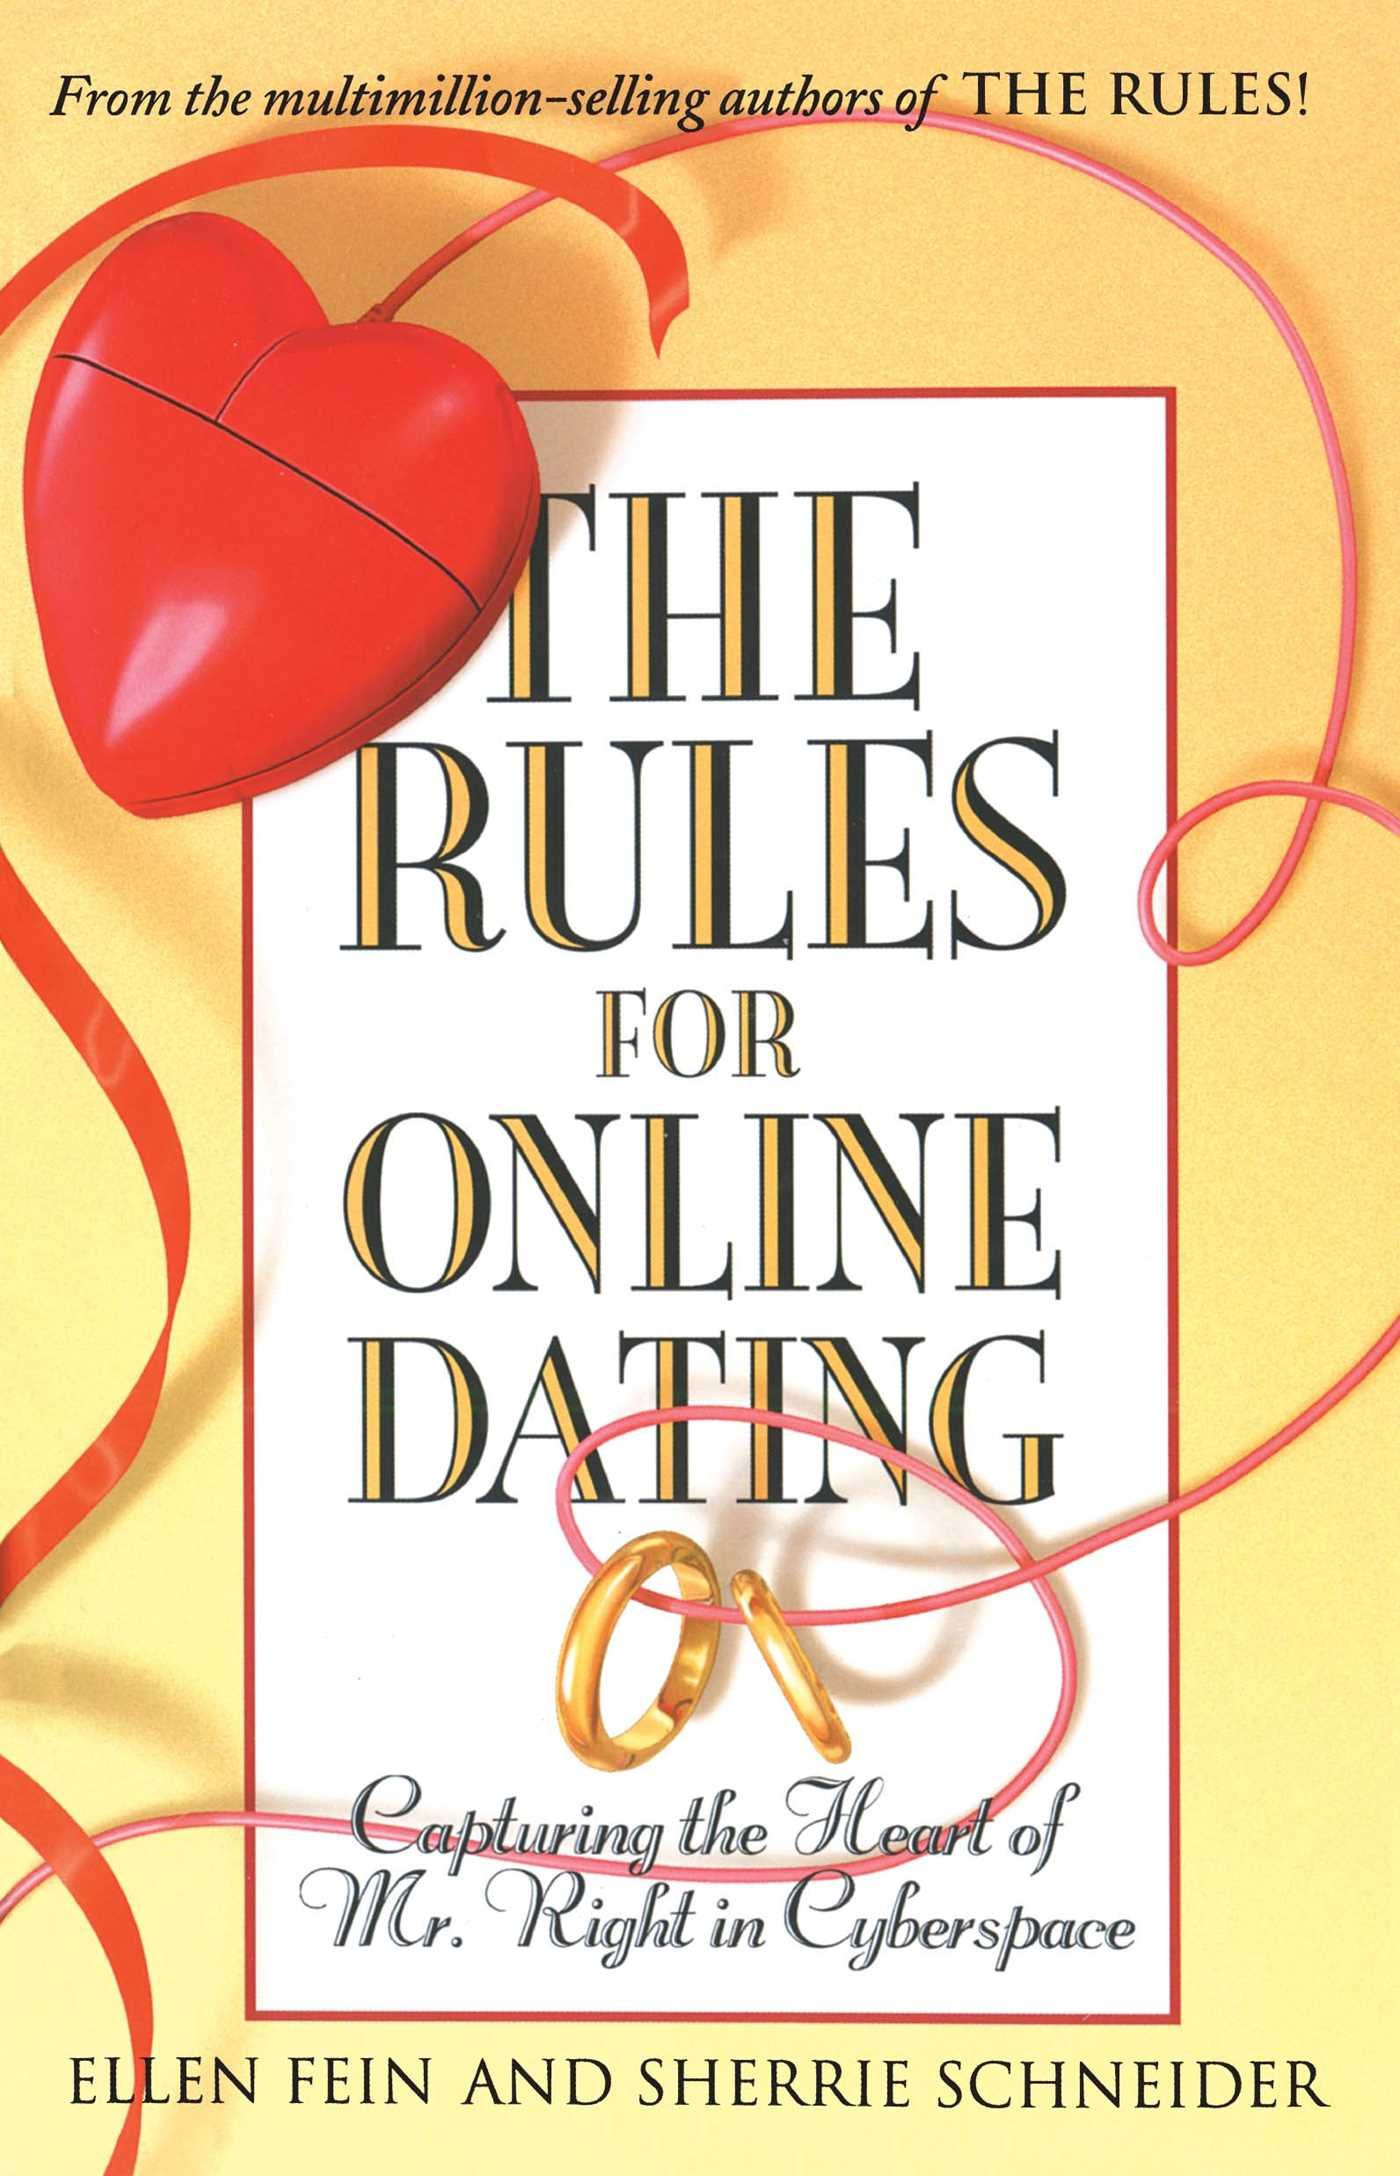 Rules Of Online Dating And Texting